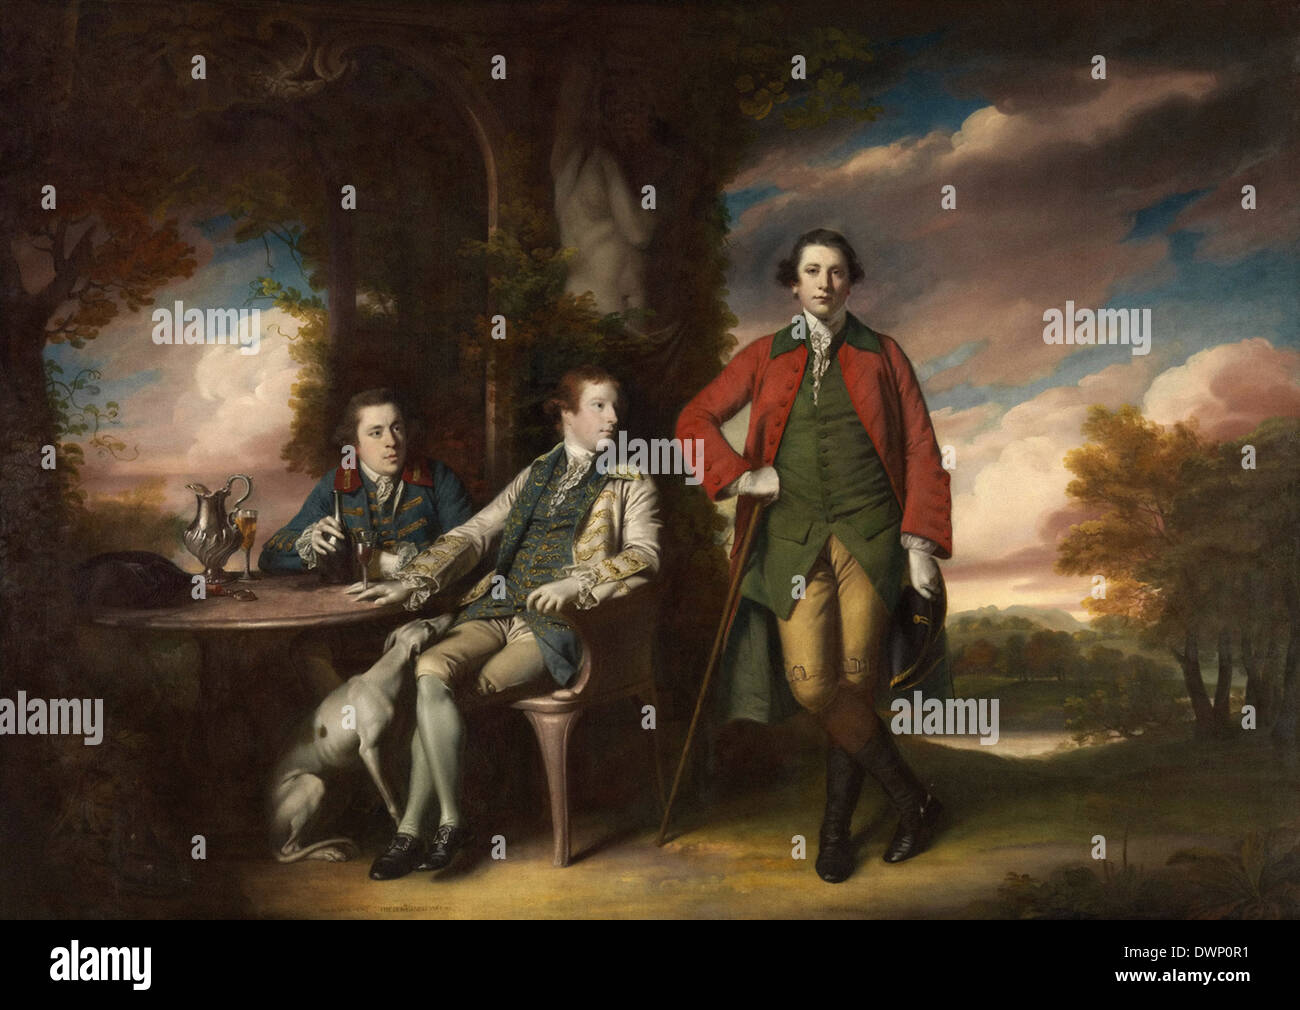 Joshua Reynolds - l'honorable Henry Fane avec Inigo Jones et Charles Blair Photo Stock